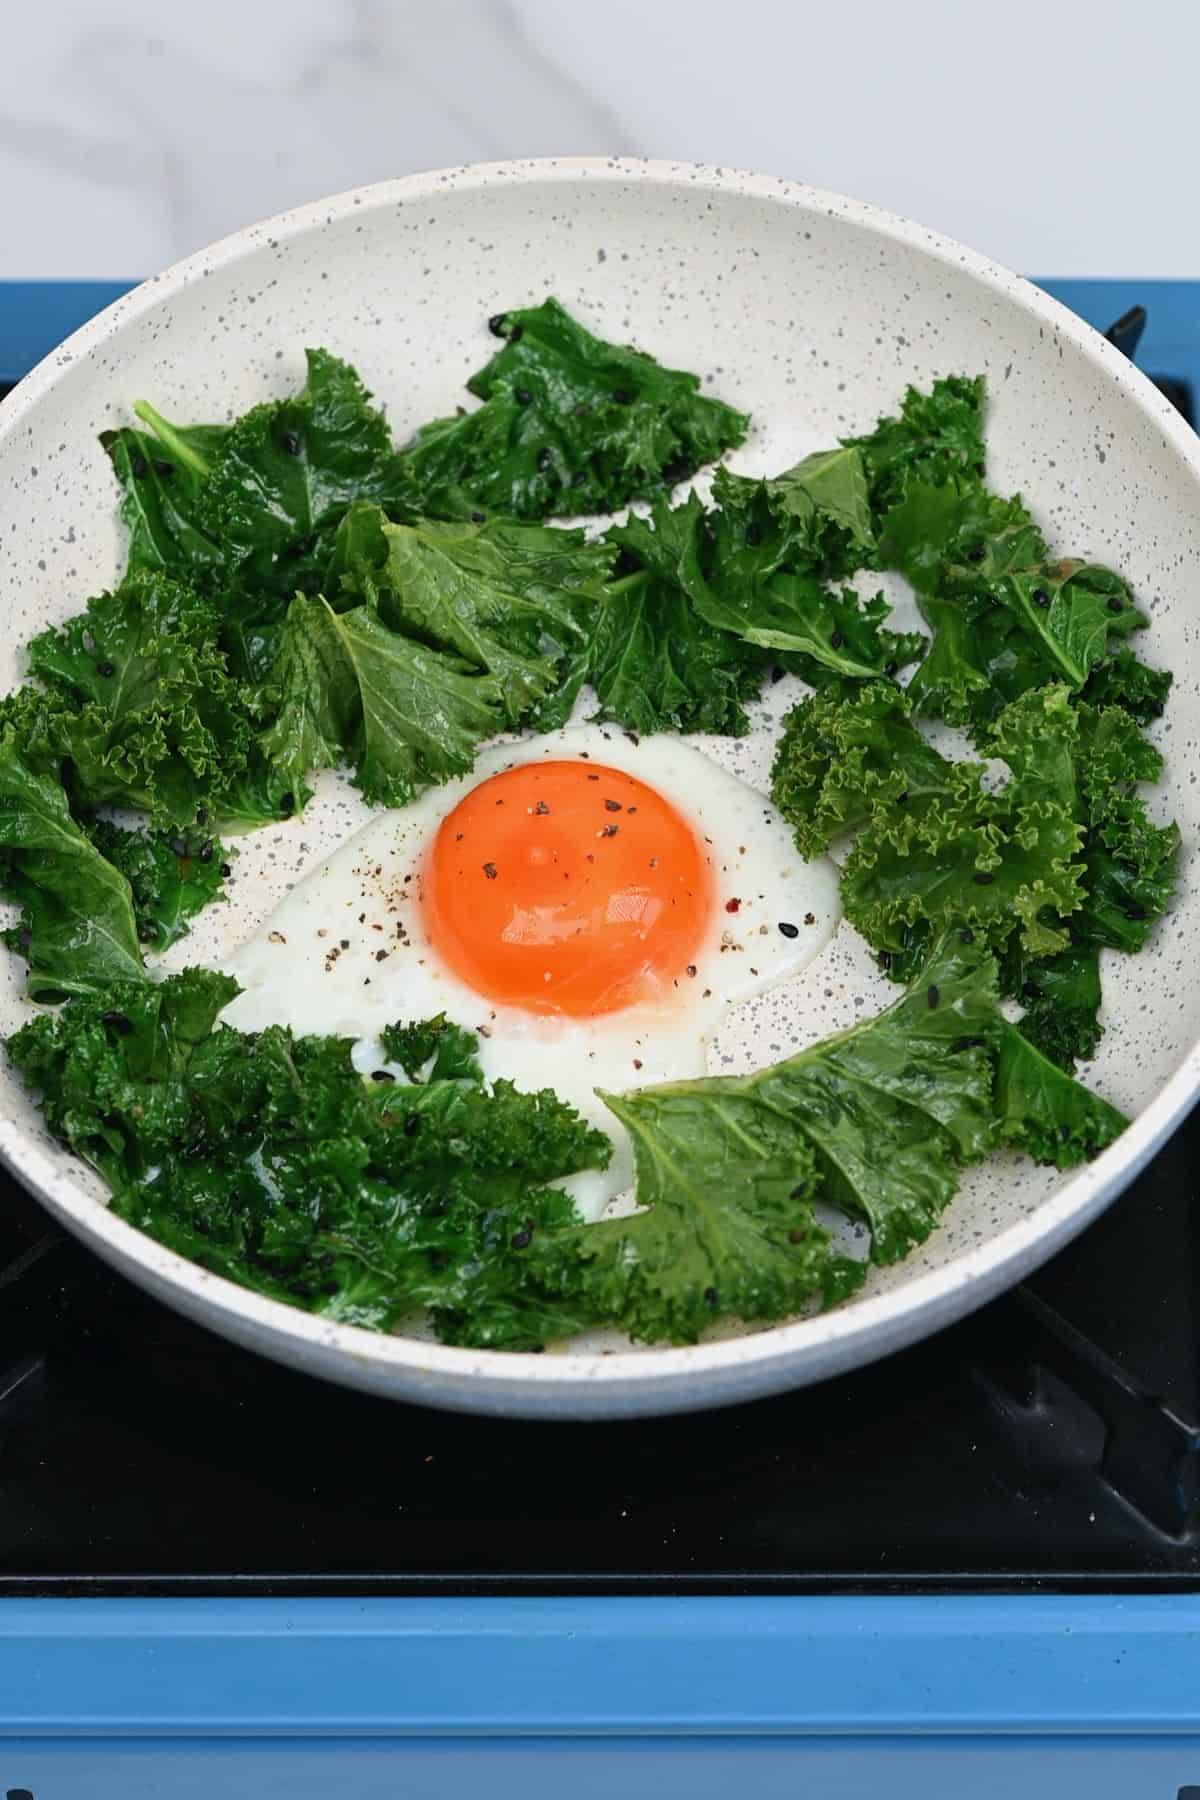 Cooking an egg and some kale in a pan